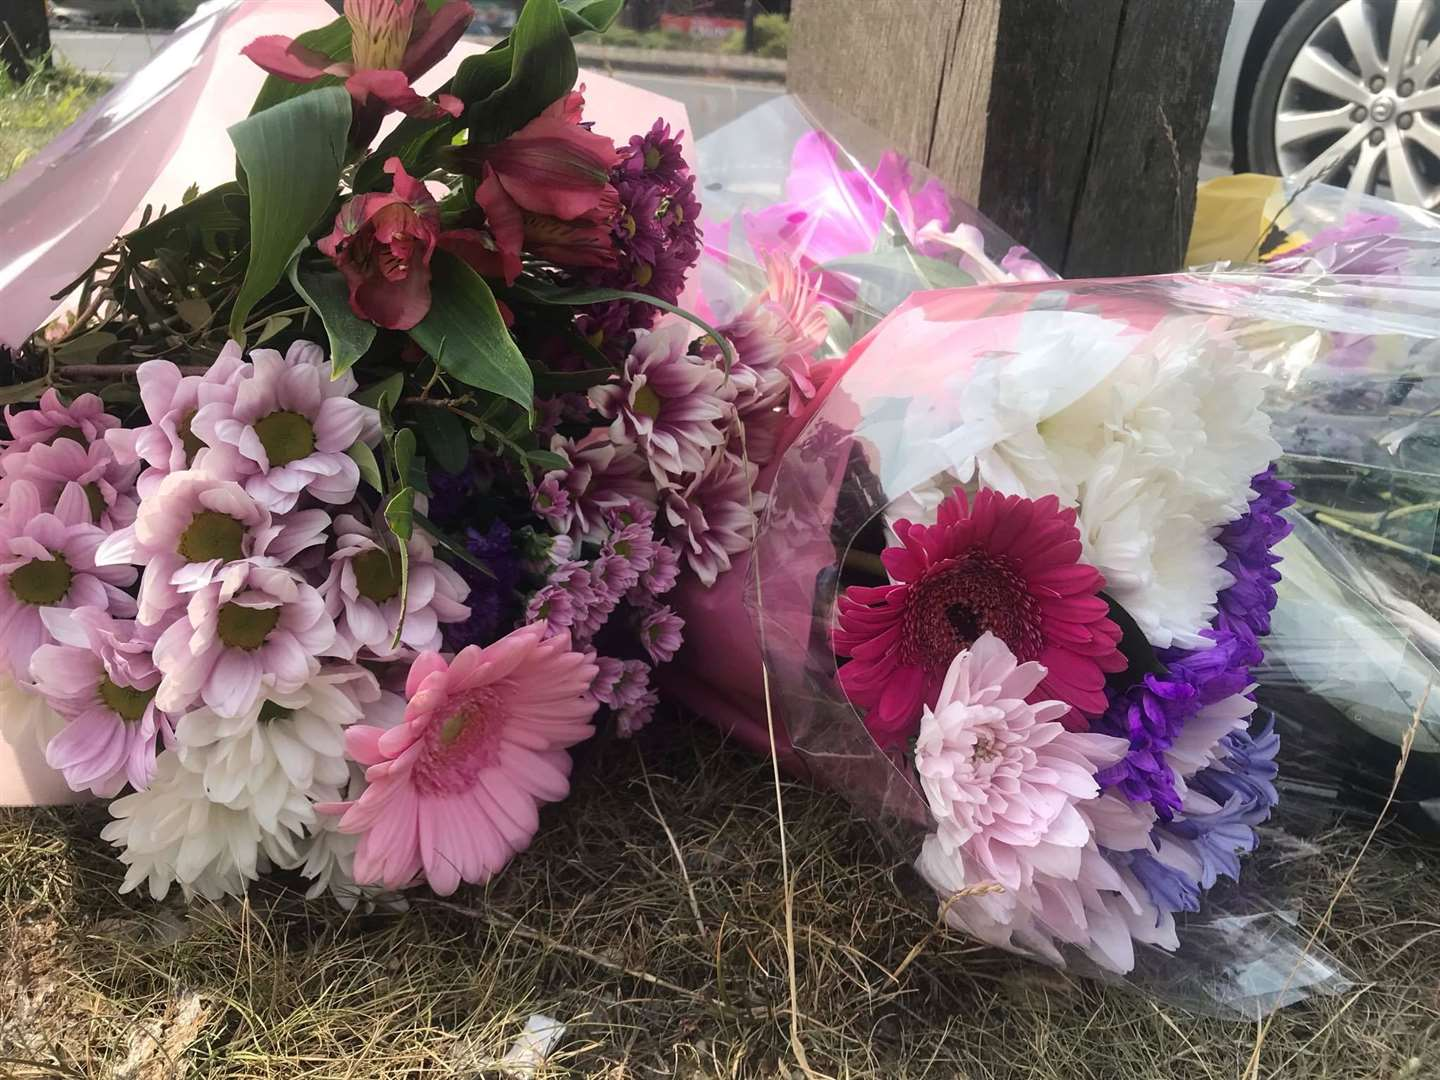 Floral tributes were left at the scene.